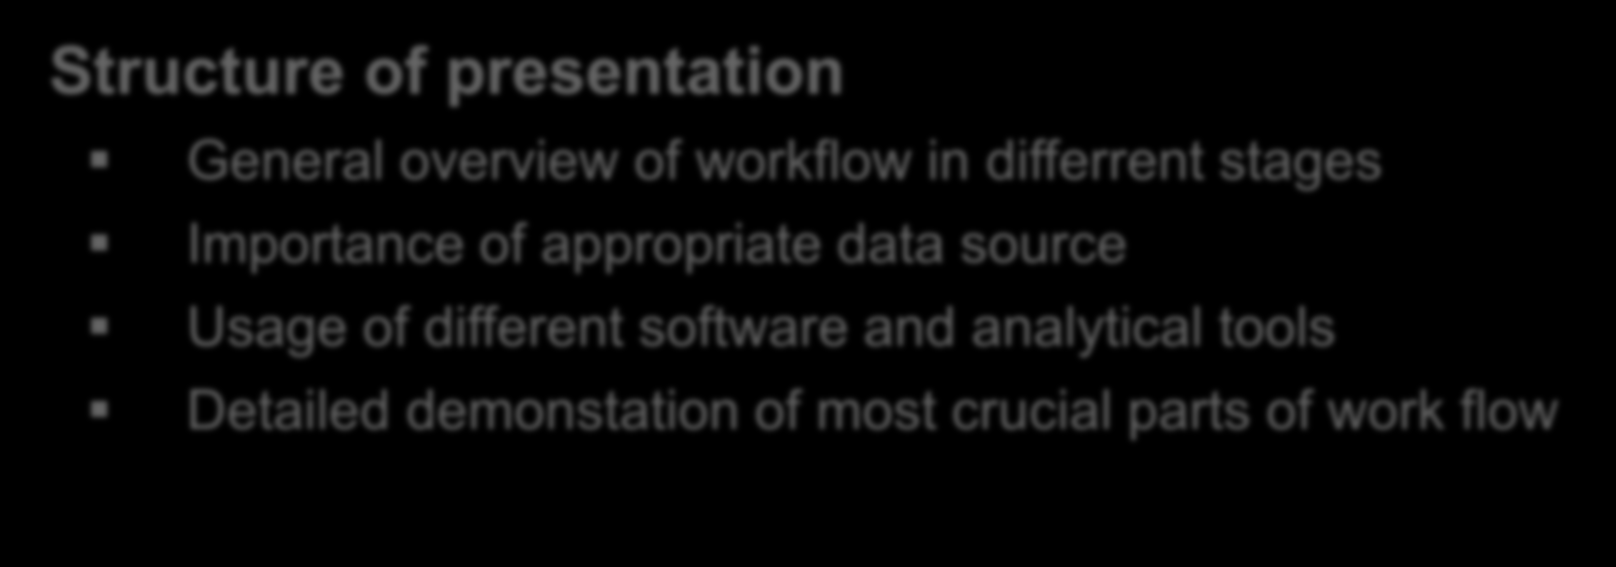 Introduction Structure of presentation General overview of workflow in differrent stages Importance of appropriate data